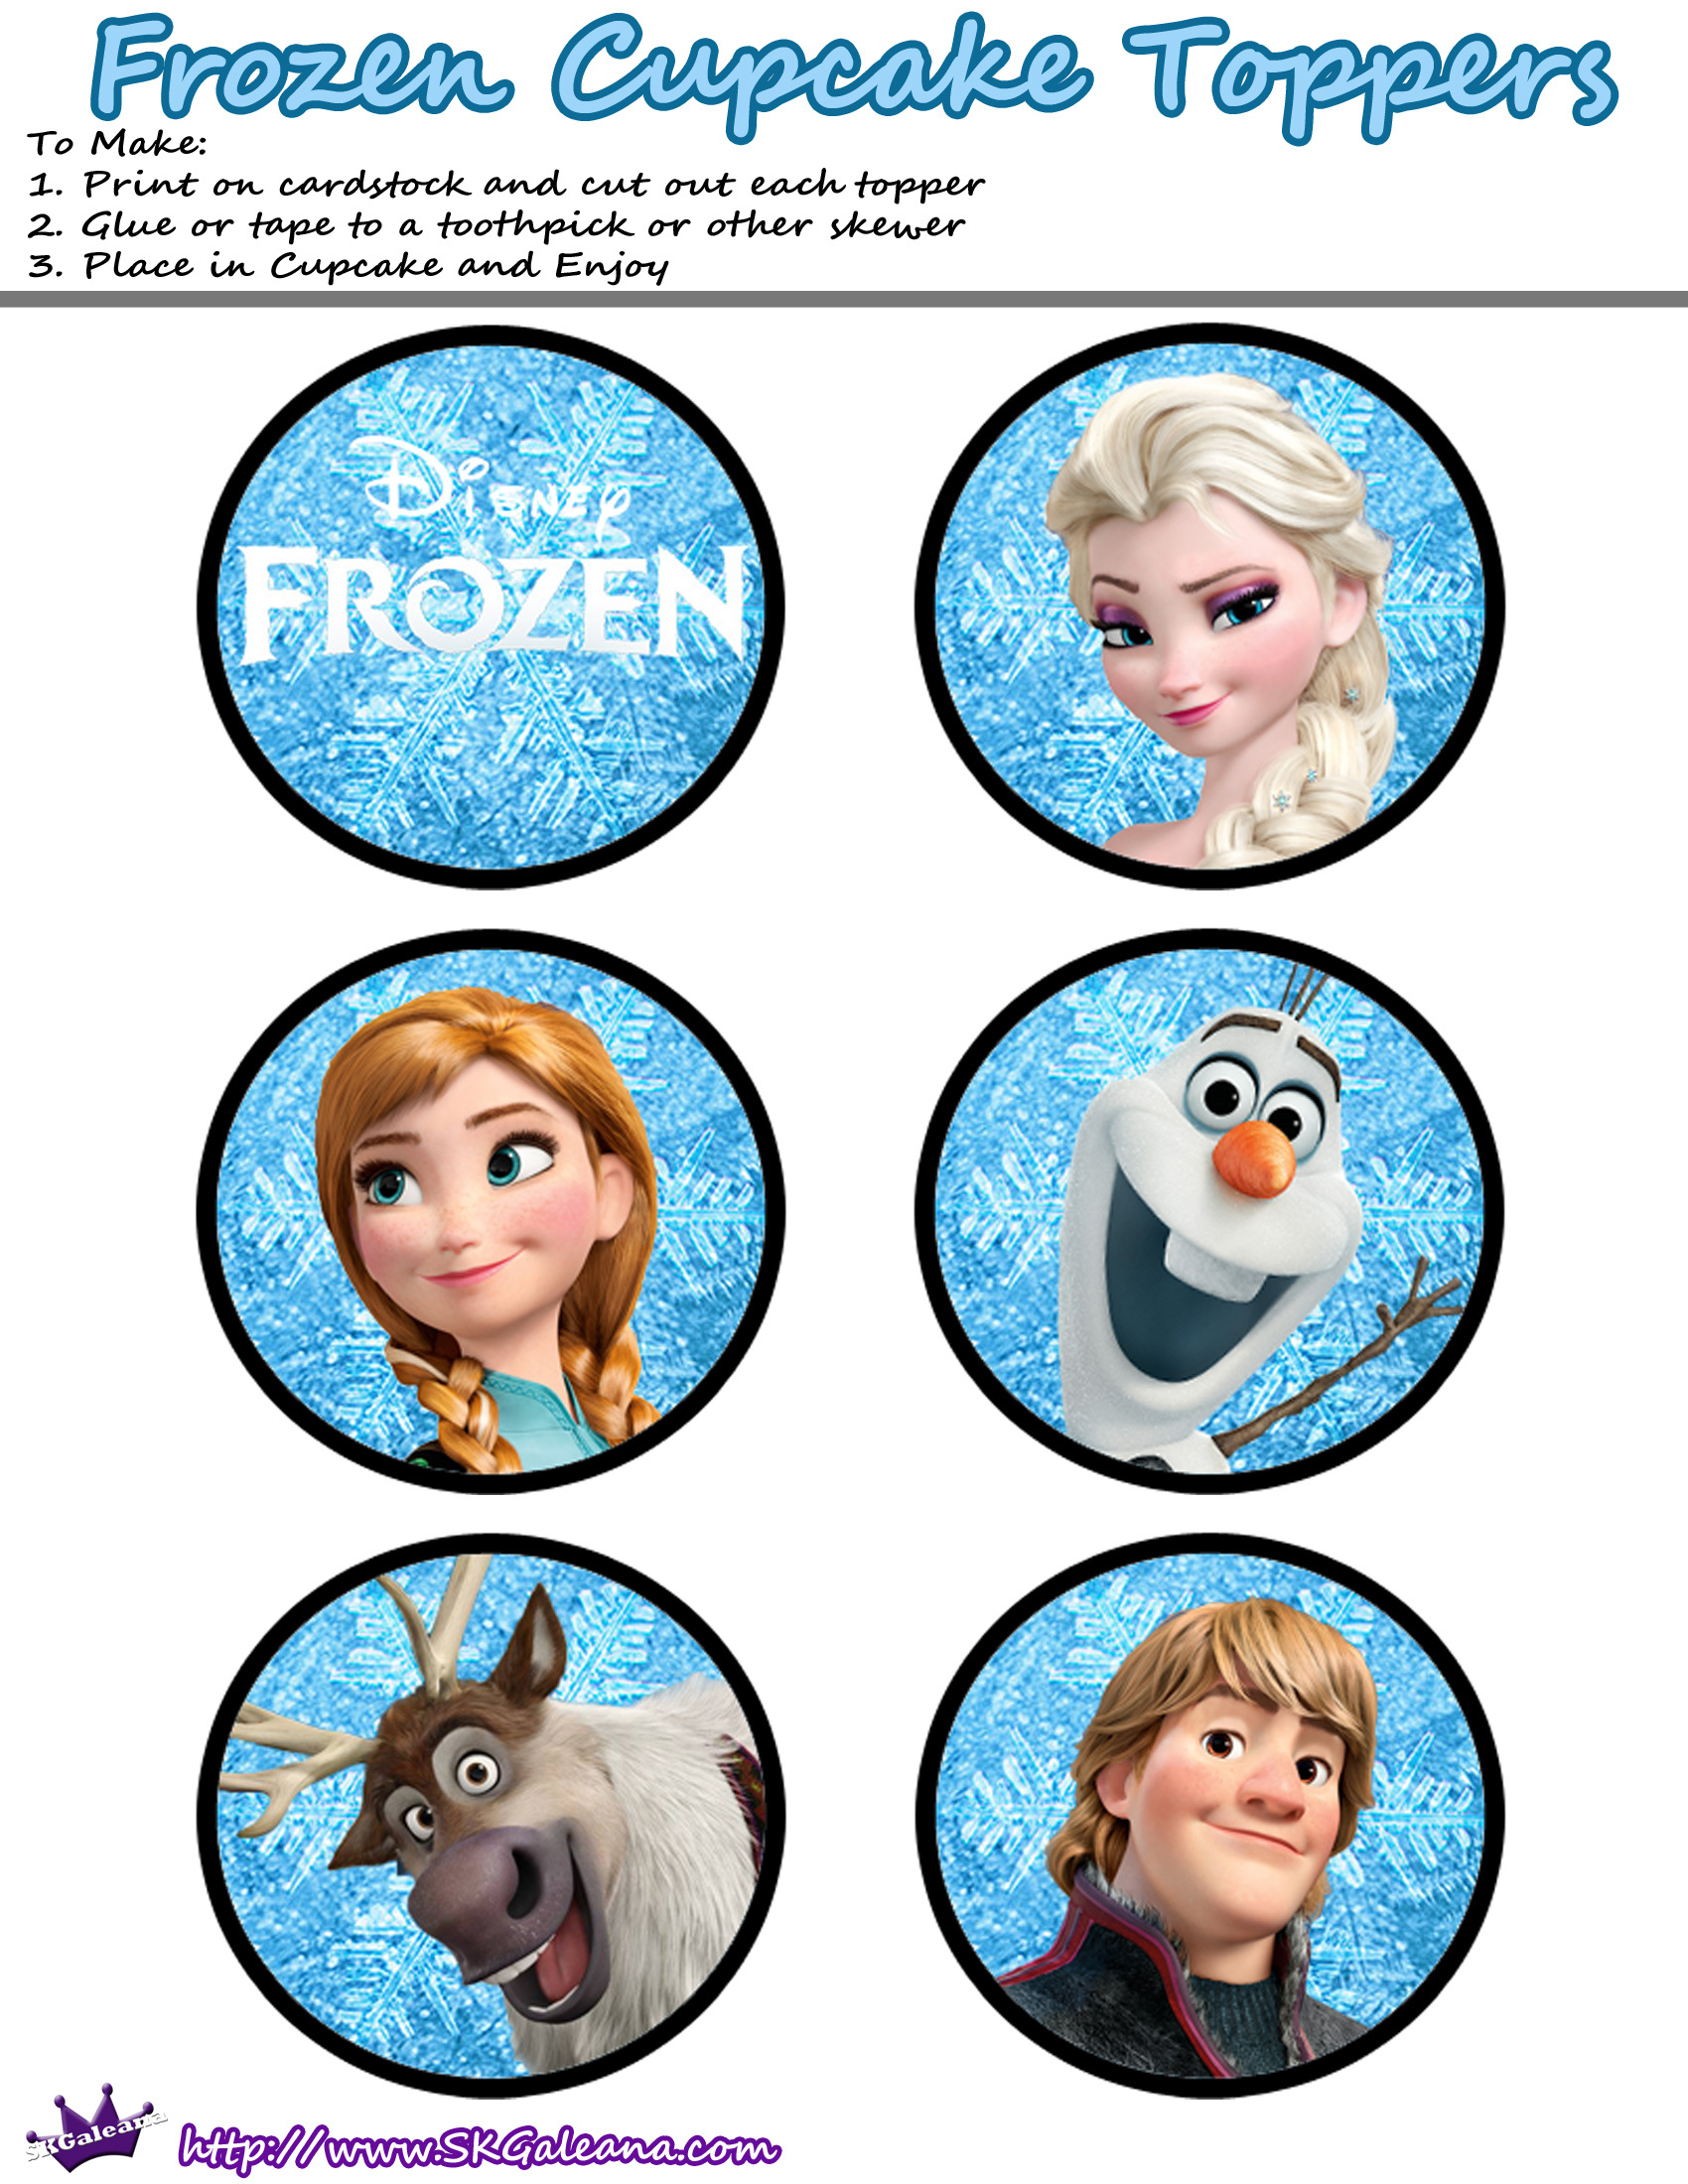 Free Printables For The Disney Movie Frozen   Cake Decorating - Frozen Cupcake Toppers Free Printable